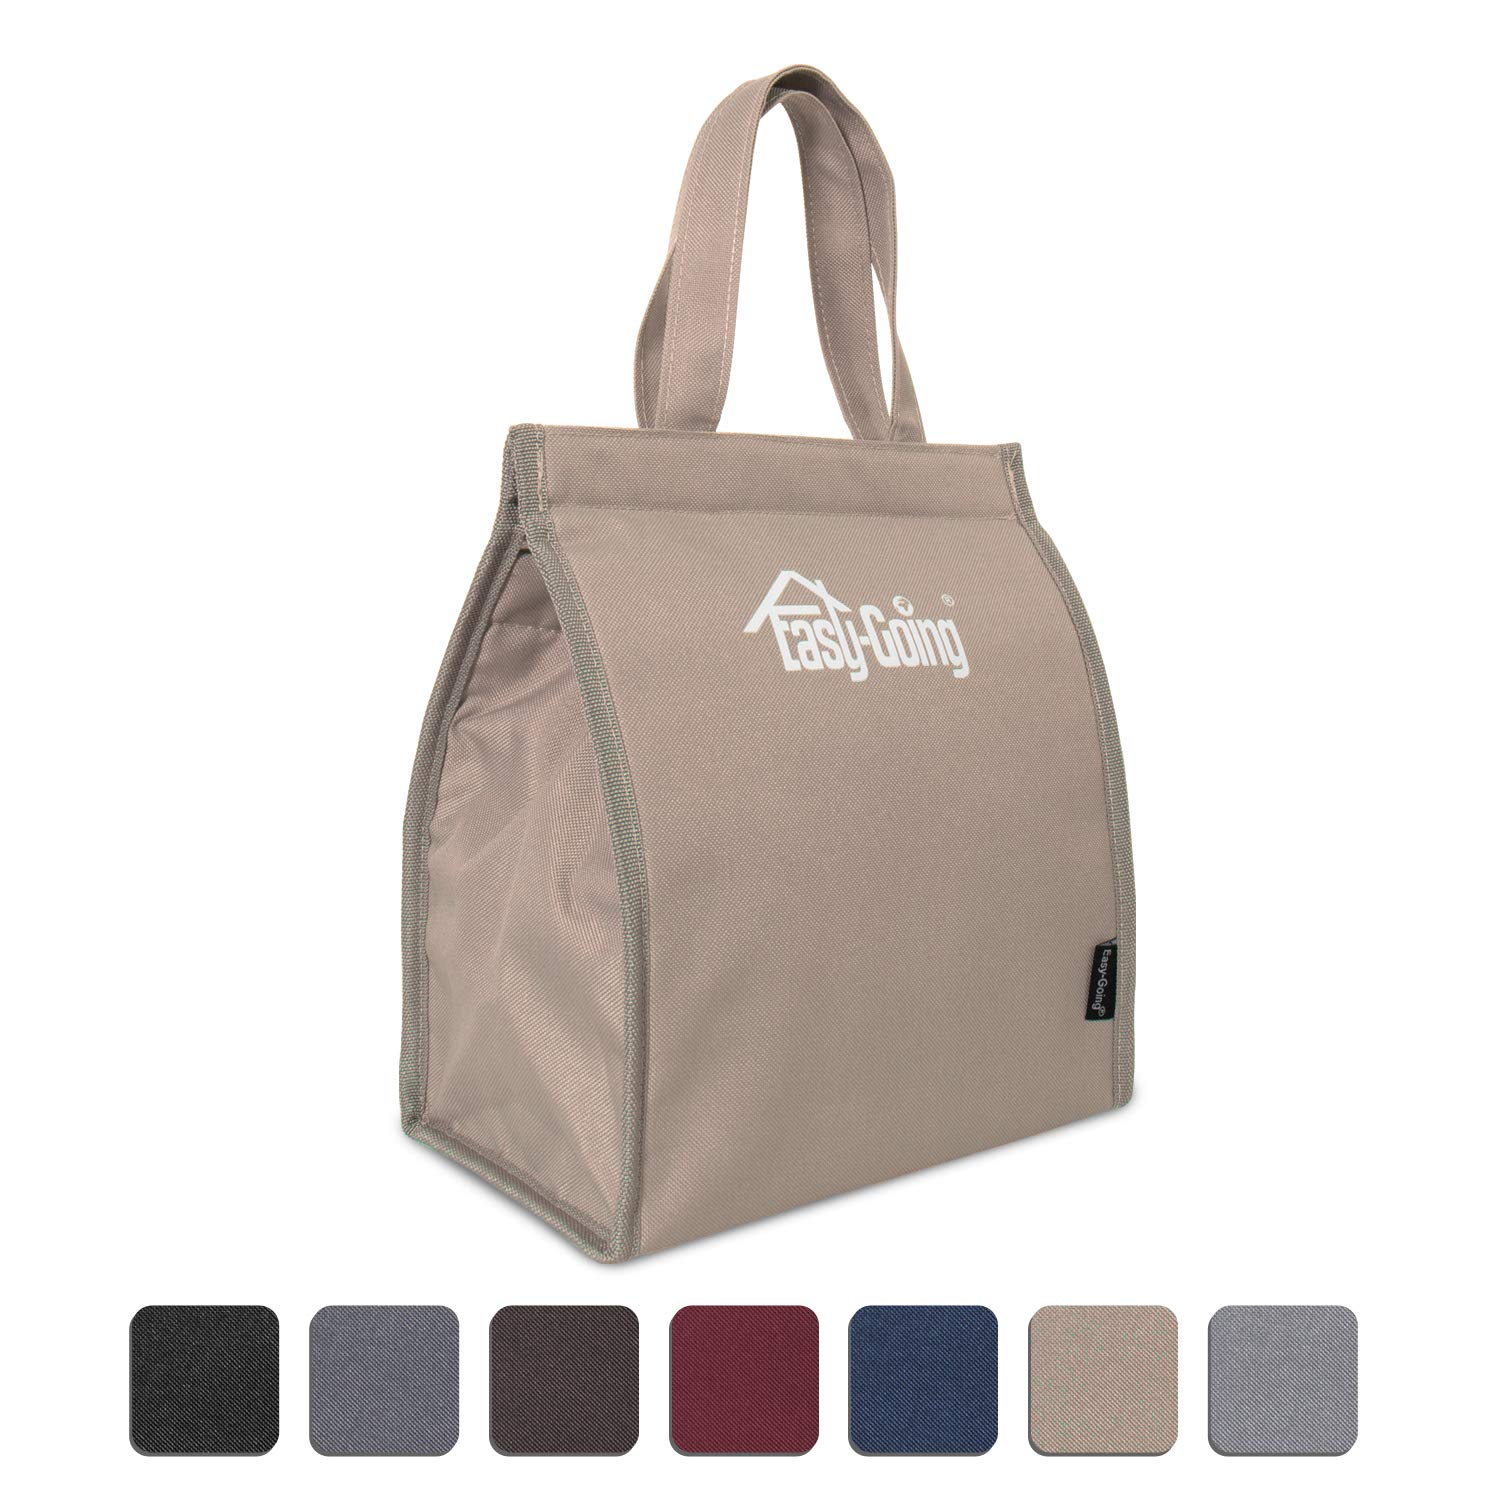 Reusable Insulated bag for hot and cold food, Foldable, Waterproof, Heavy Duty, Eco-Friendly, Insulated Bag for Food Delivery, Picnic, Party, Travel, BBQ (S,Camel)